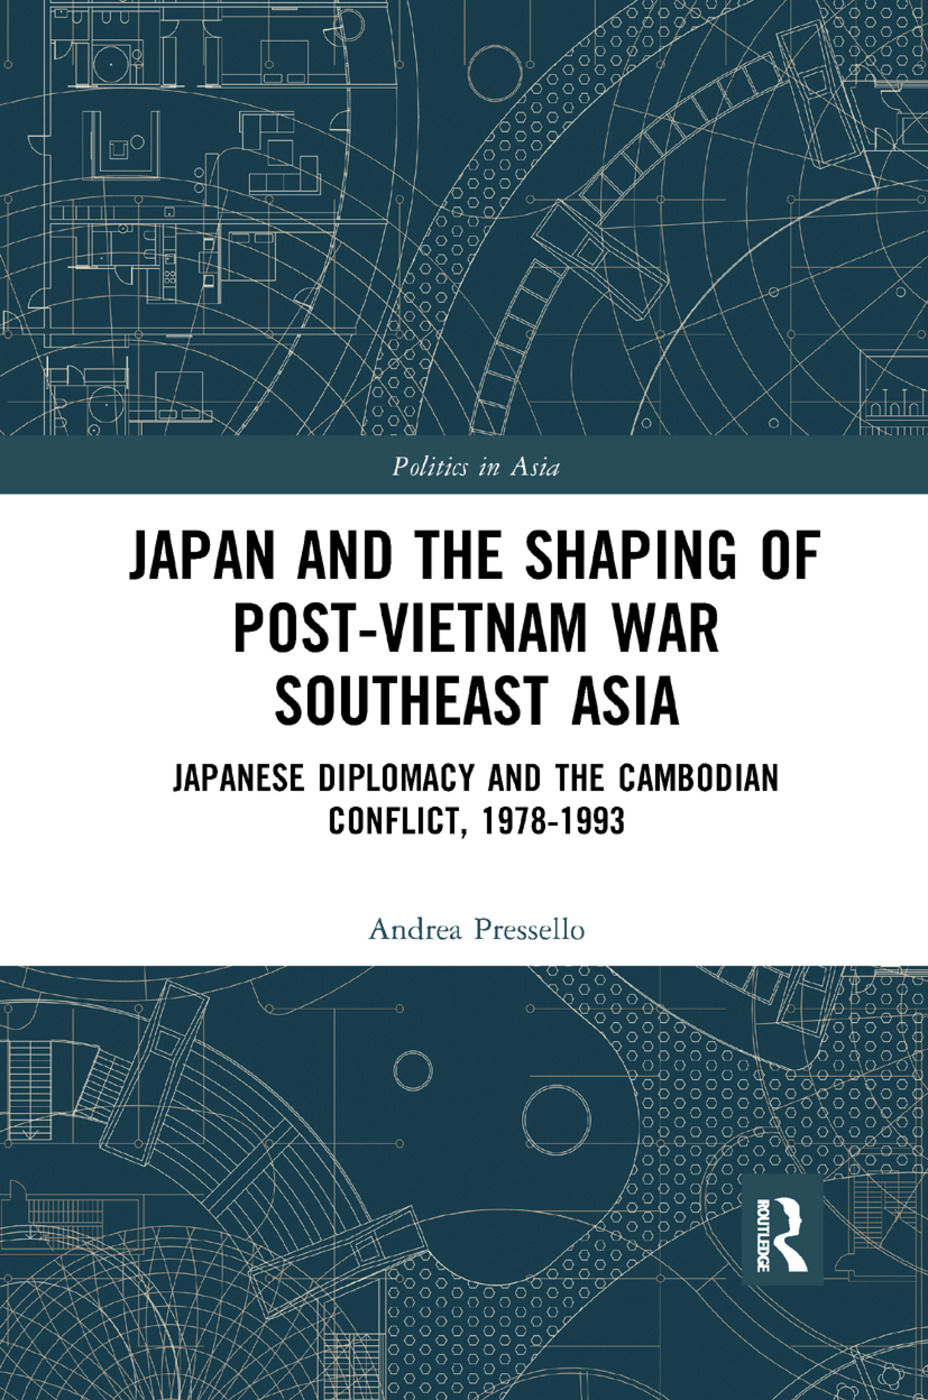 Japan and the shaping of post-Vietnam War Southeast Asia: Japanese diplomacy and the Cambodian conflict, 1978-1993 book cover